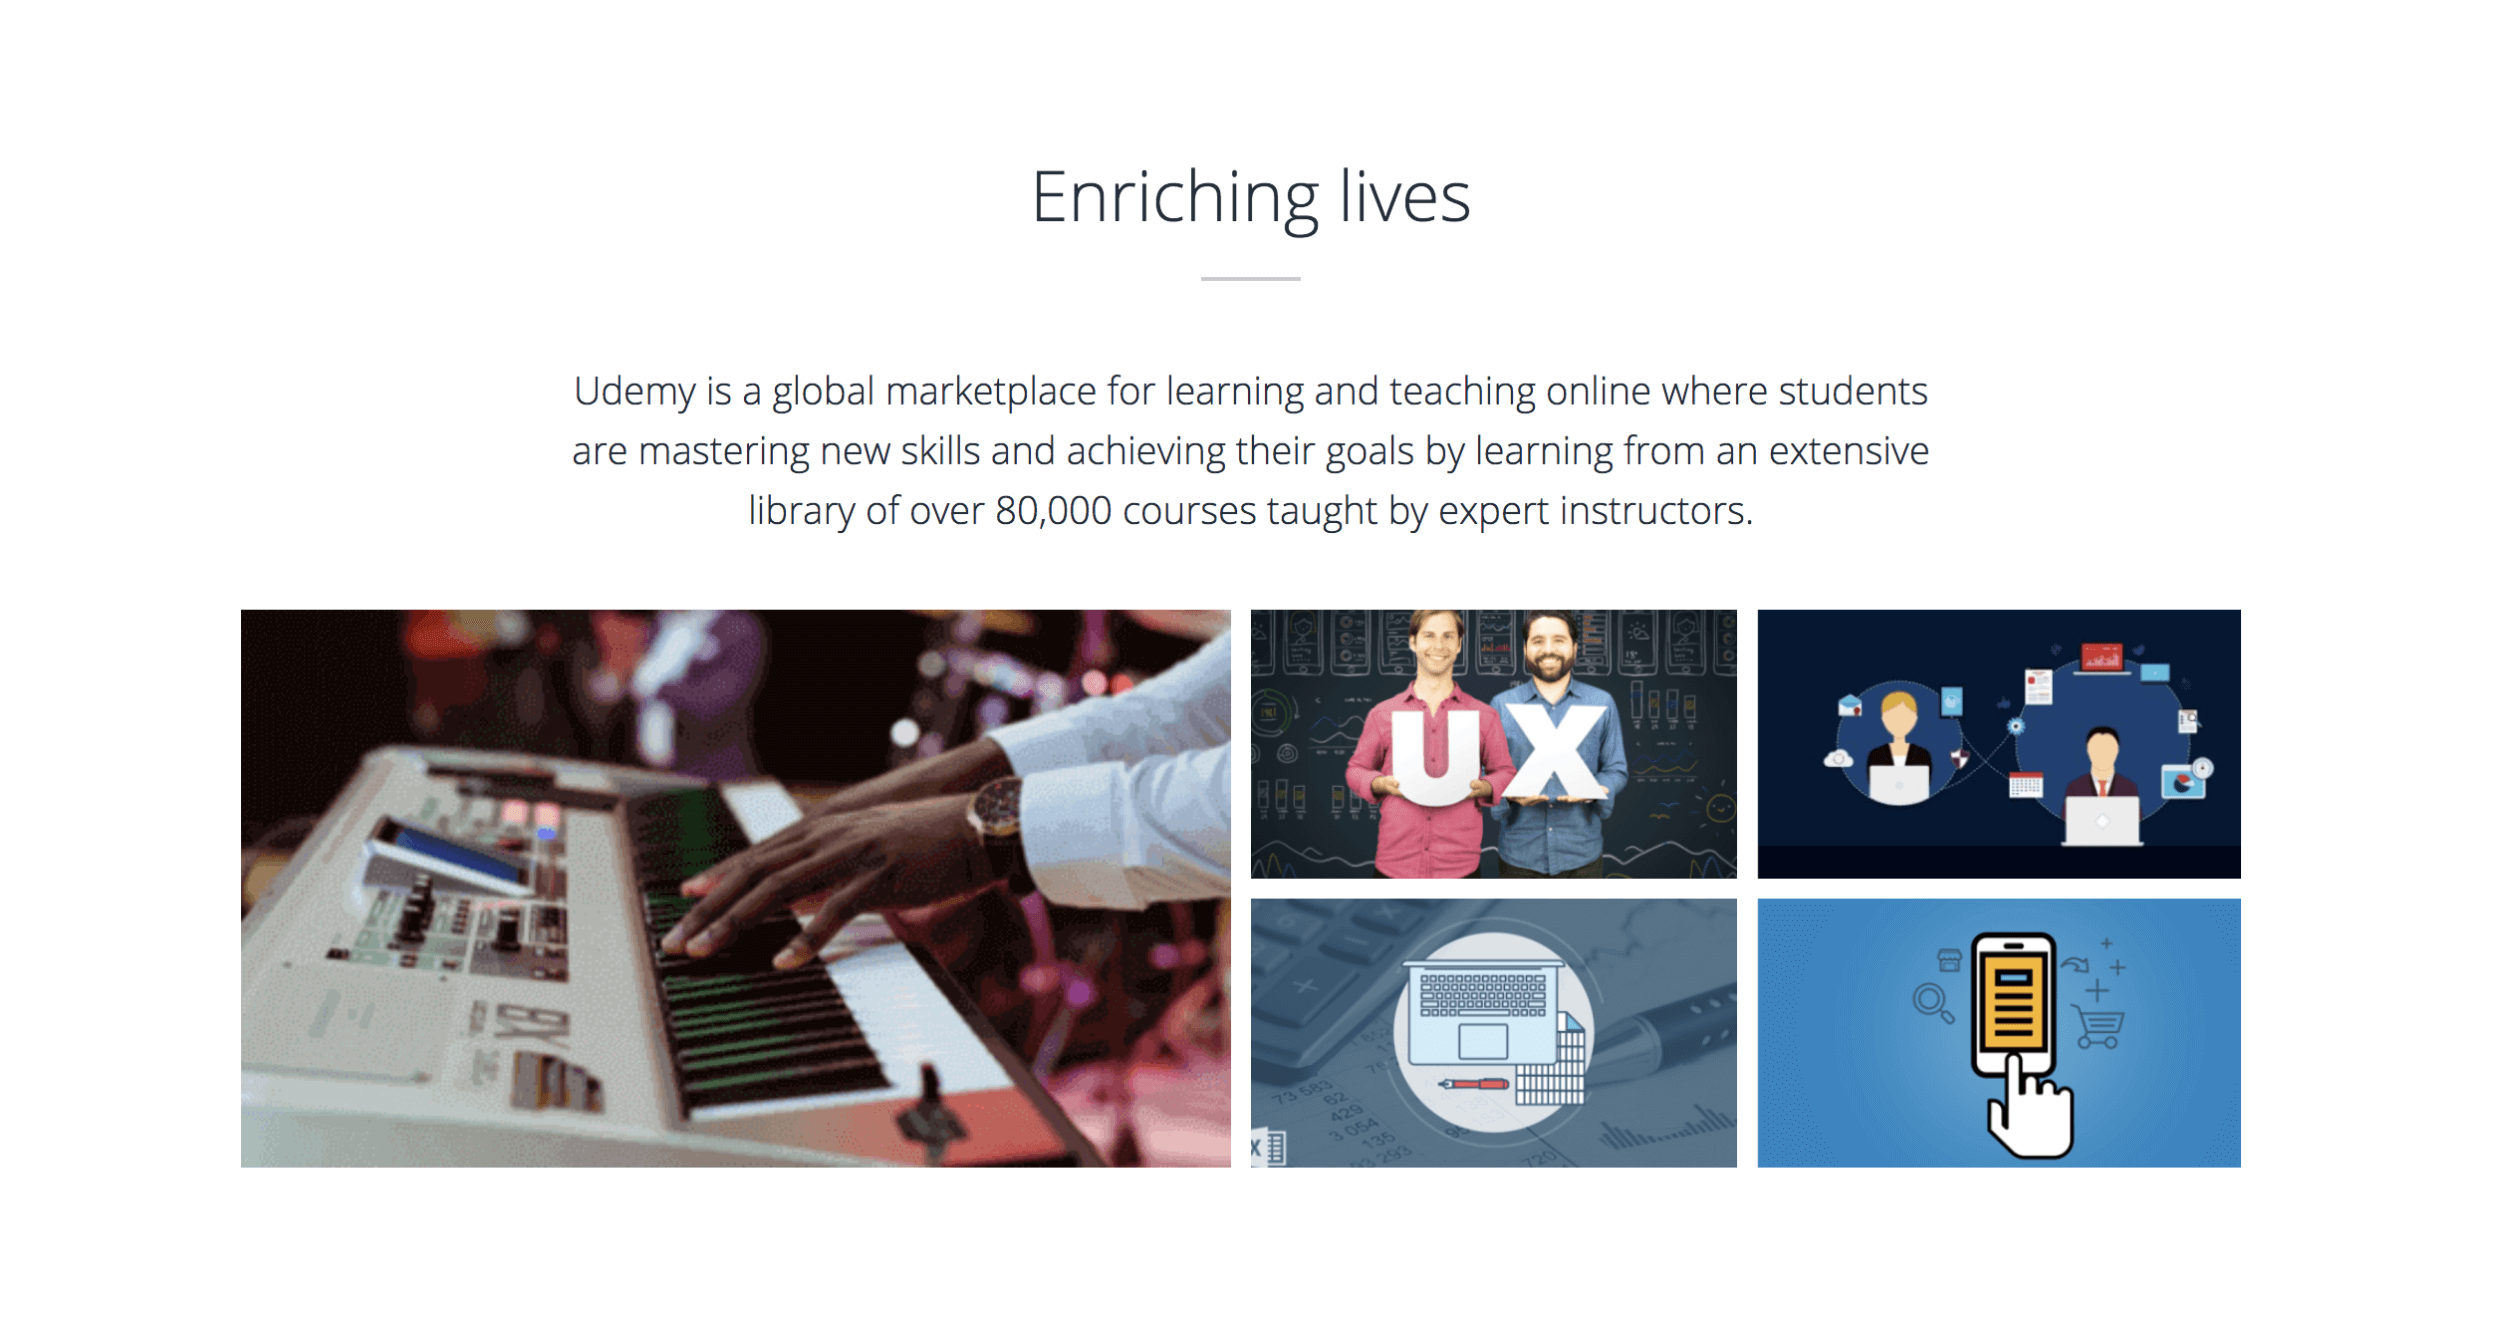 Screenshot from the Udemy website with the title 'Enriching lives' in which Udemy markets its courses as being taught by expert instructors